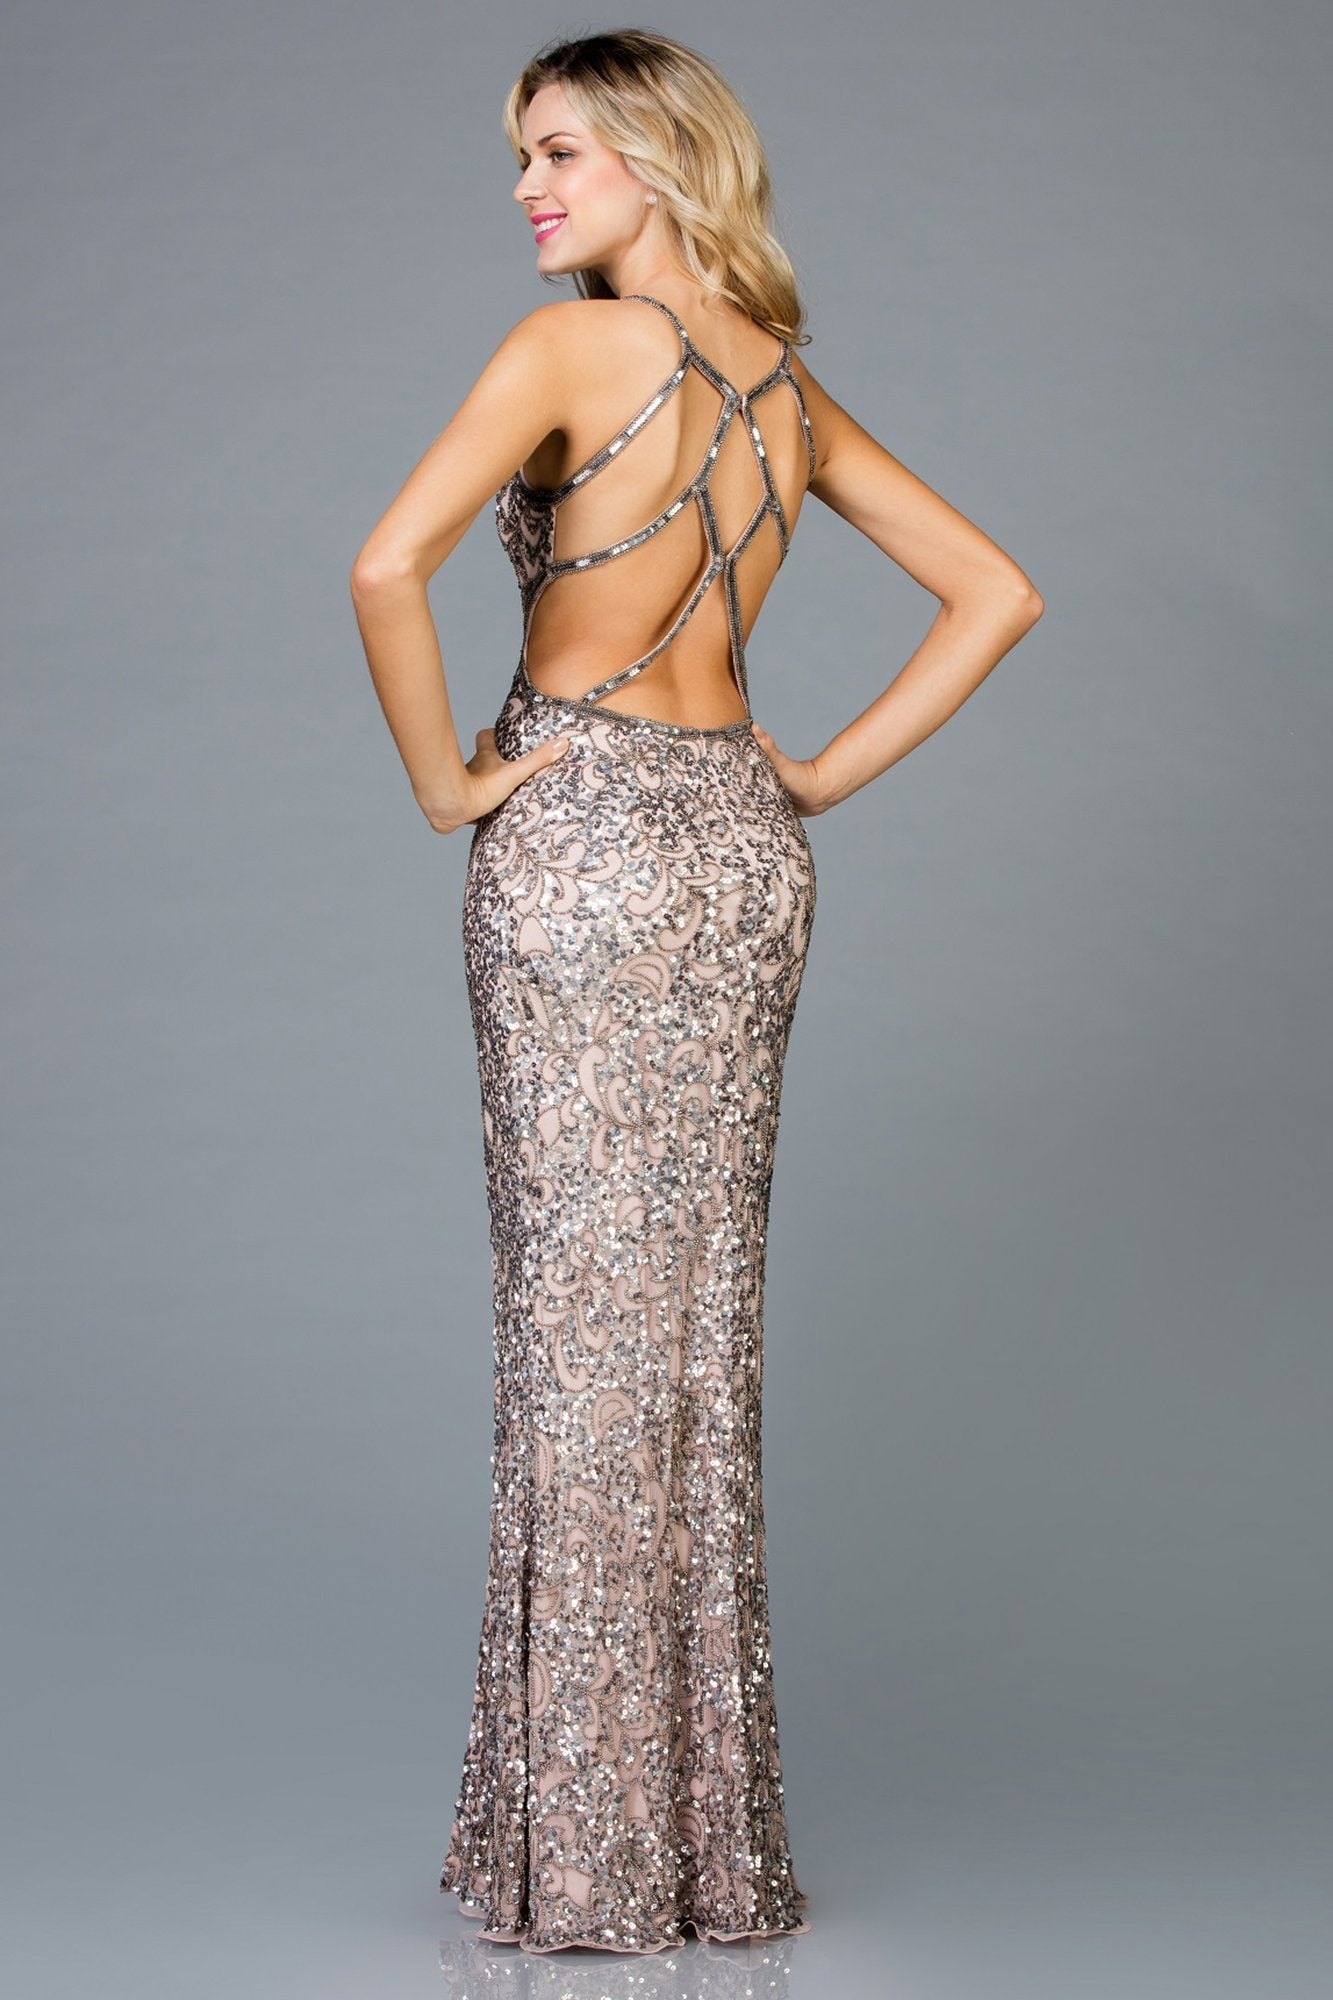 SCALA - Sequin Ornate Sheath Gown 48932 In Gold